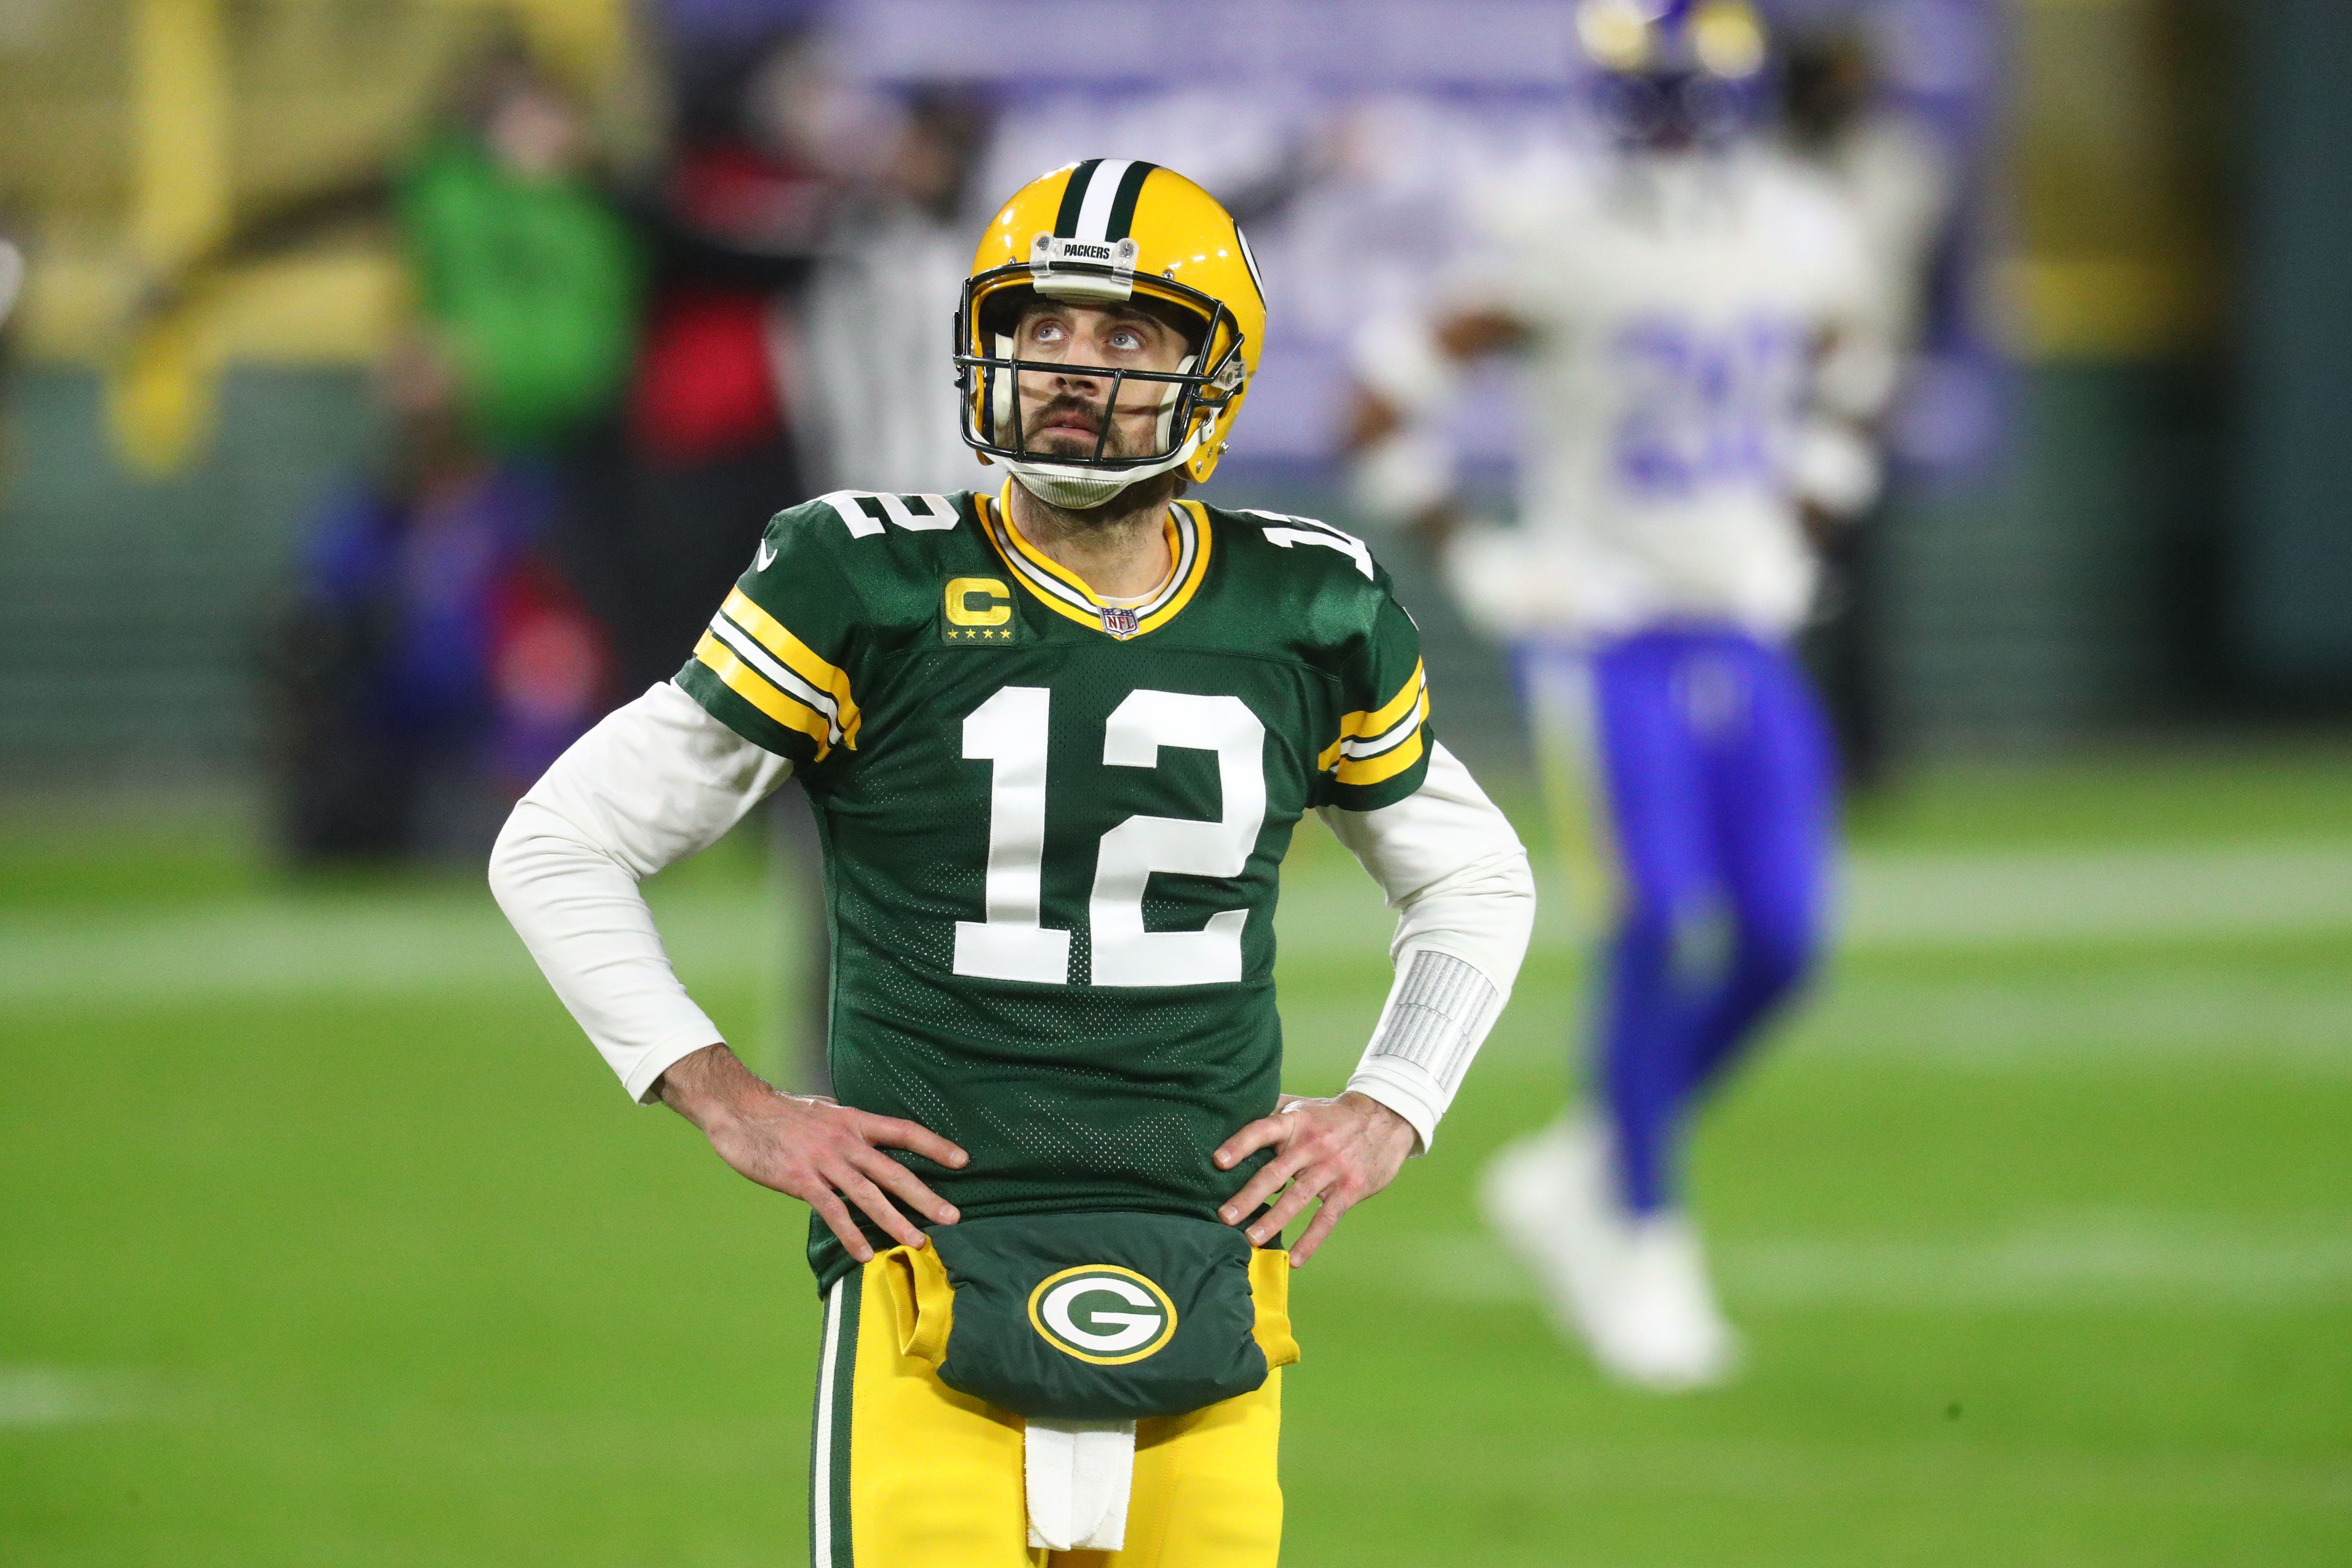 Peyton Manning hopes Aaron Rodgers remains in Green Bay